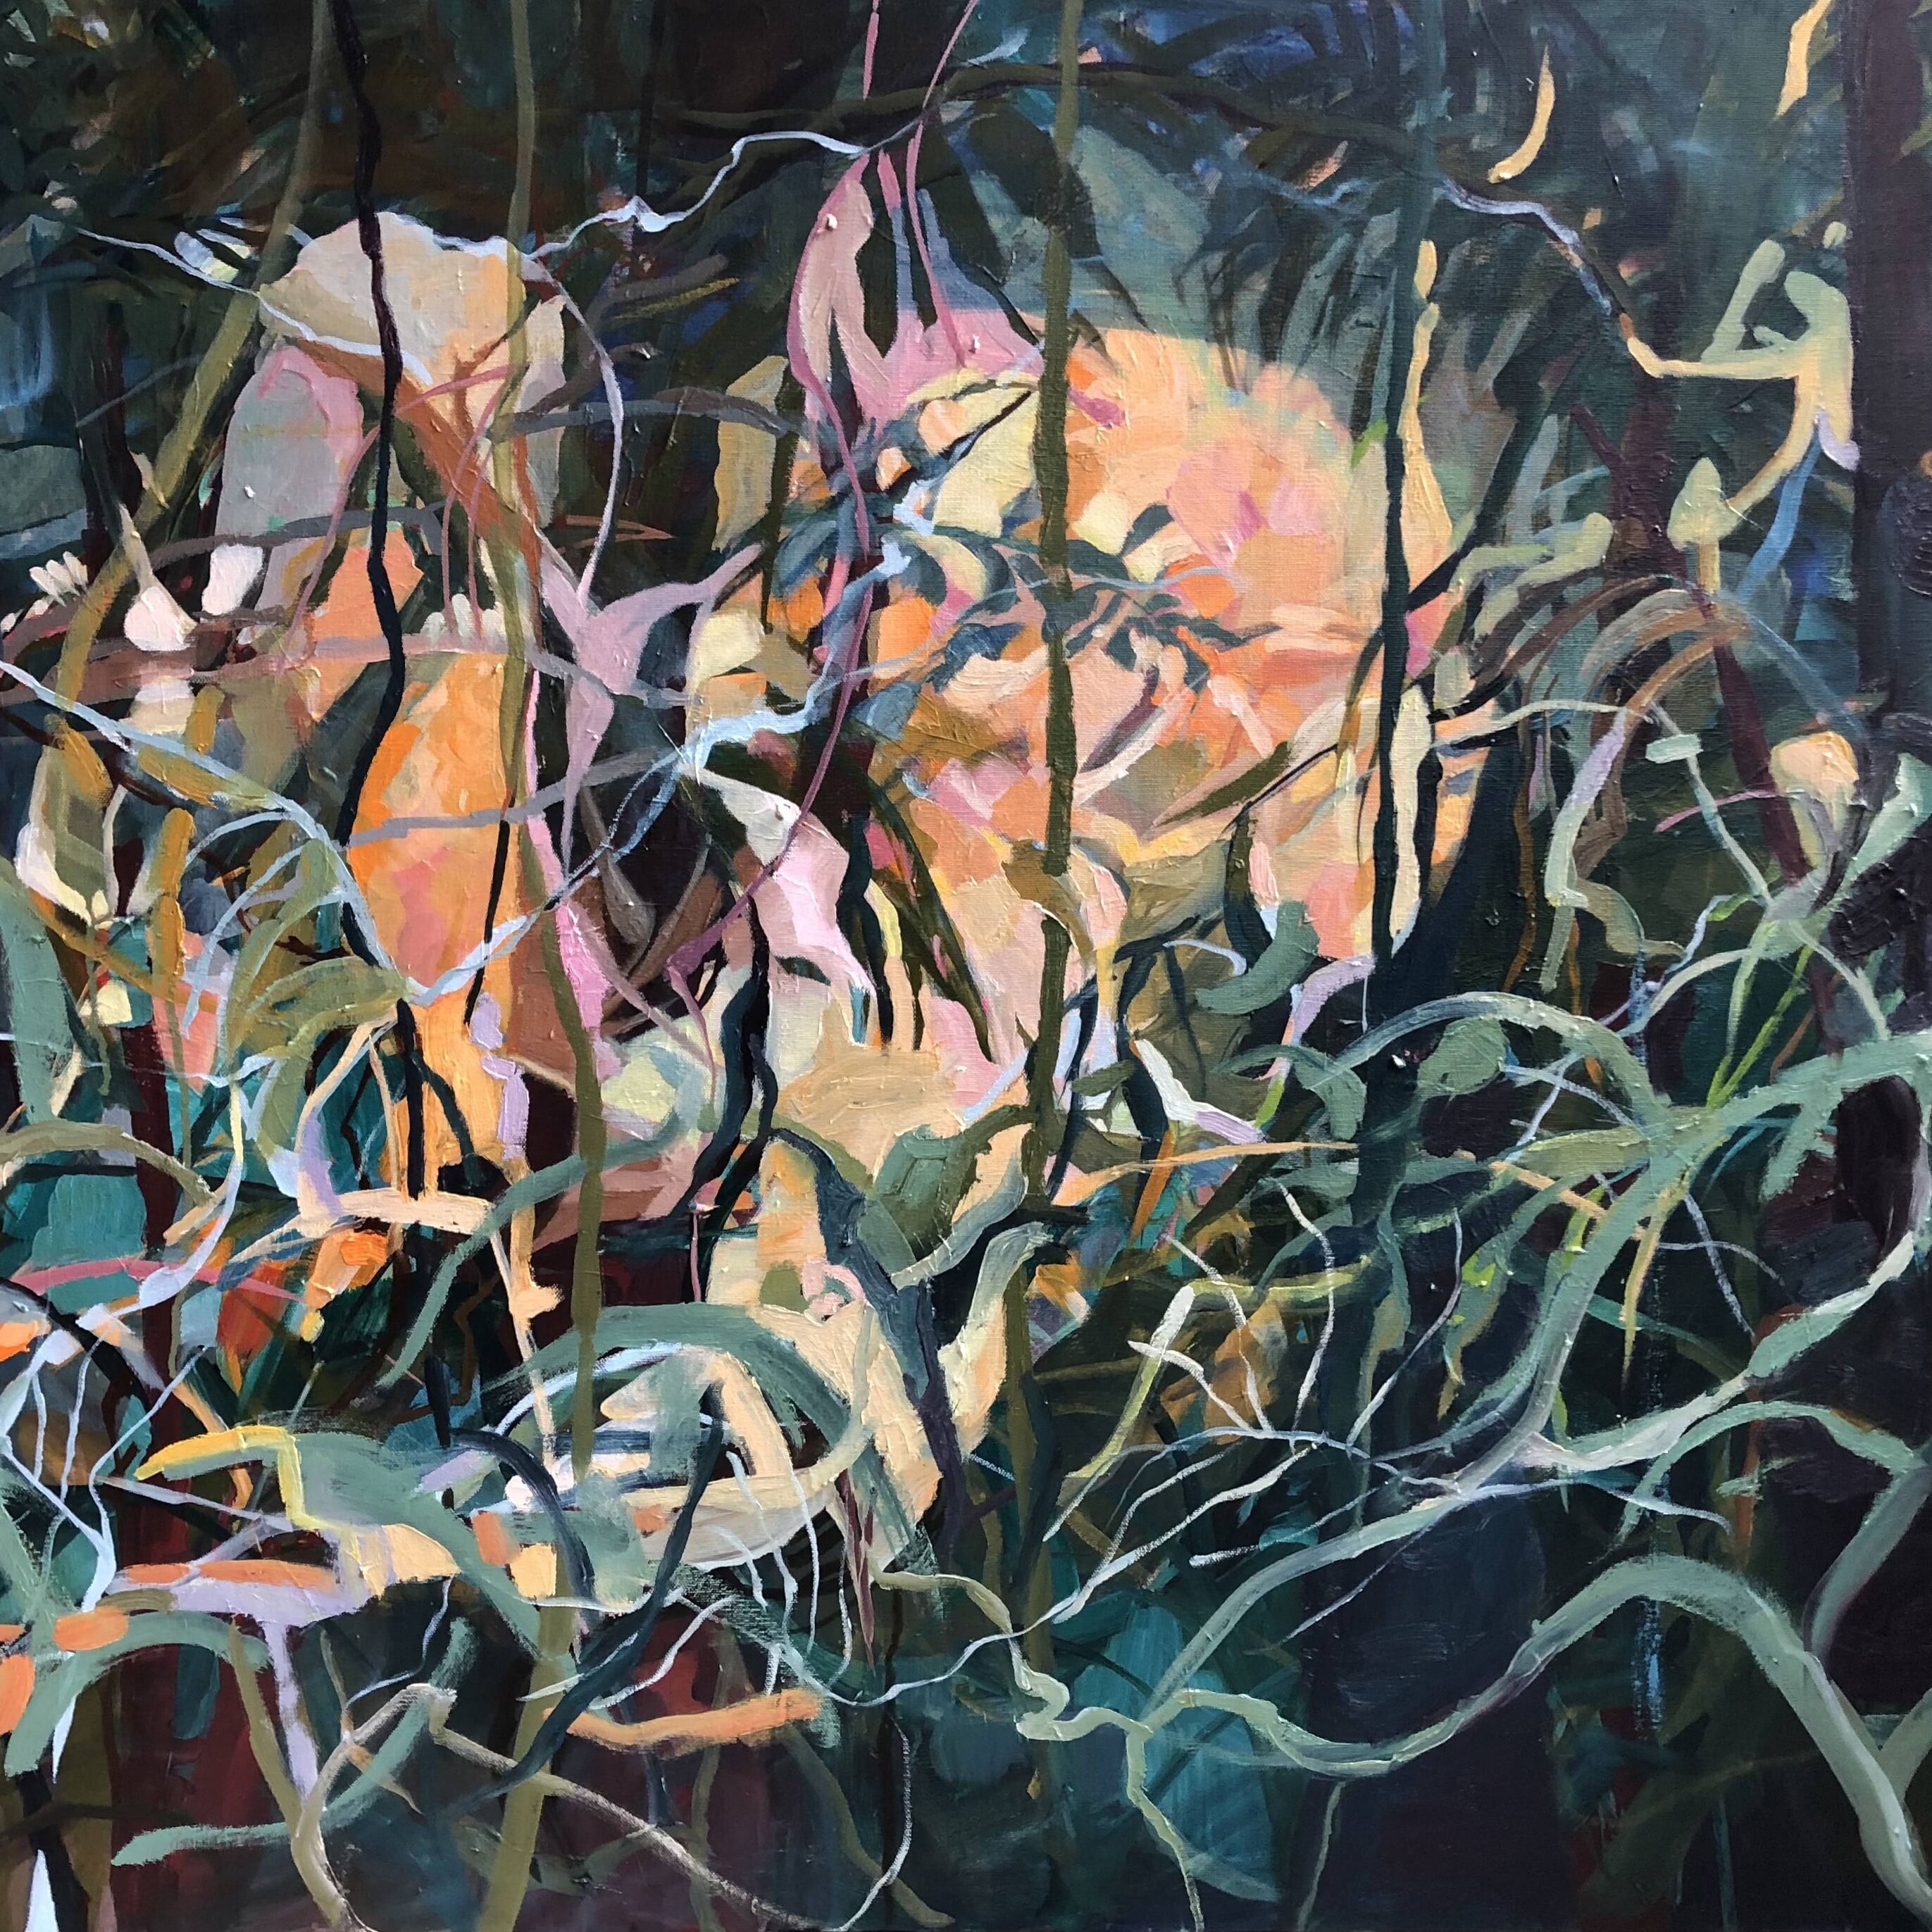 Abstract Image of Foliage, Painting by Erica Wagner